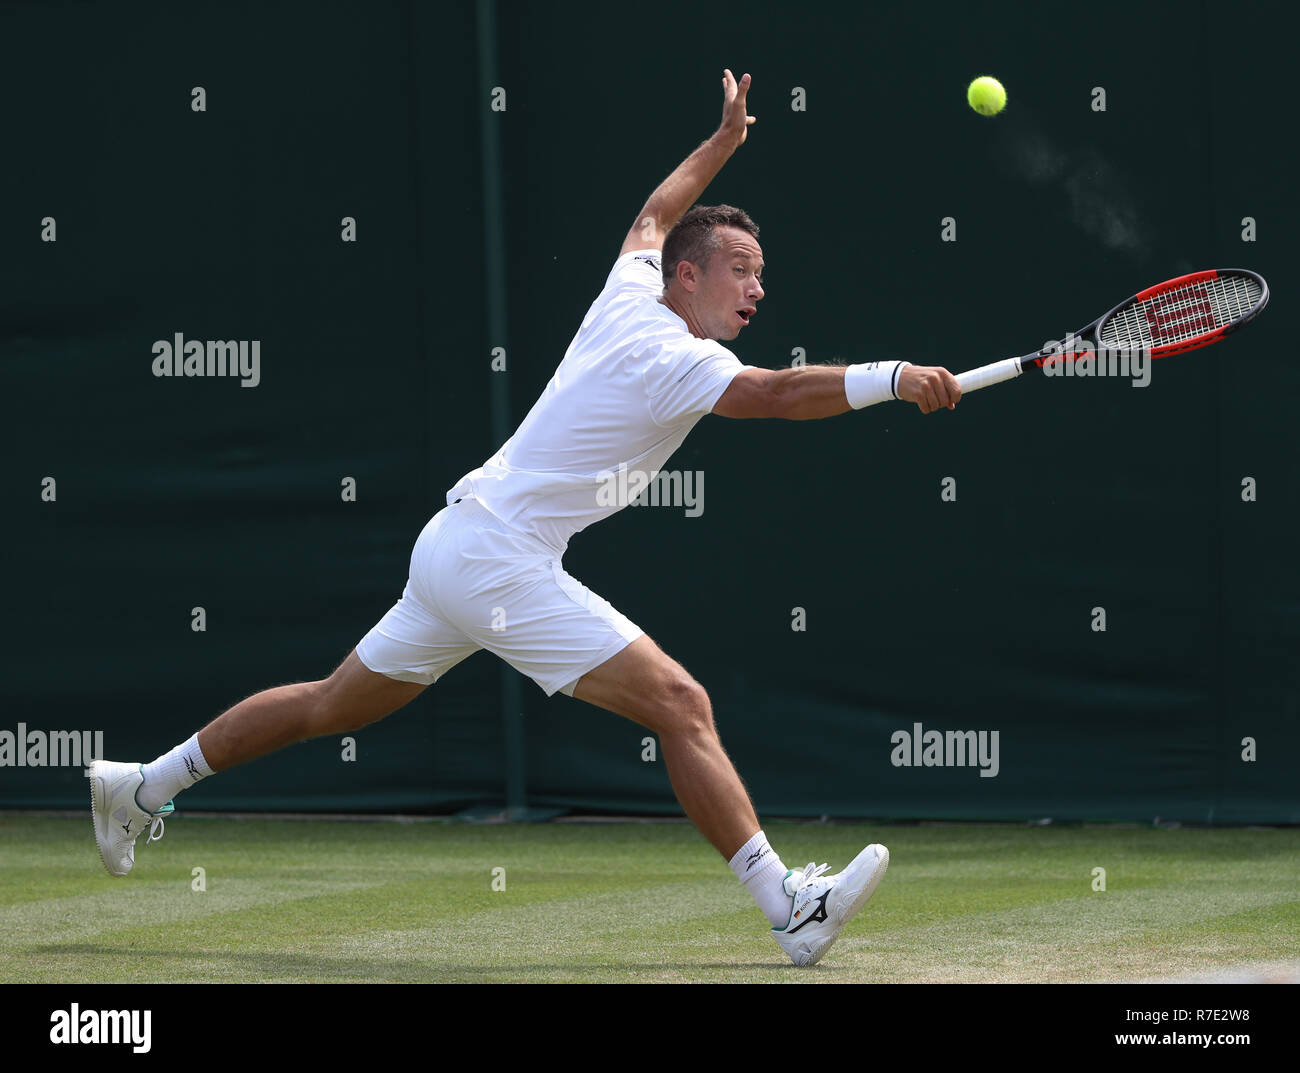 German player Philipp Kohlschreiber in action  at Wimbledon, London, Great Britain, United Kingdom. - Stock Image